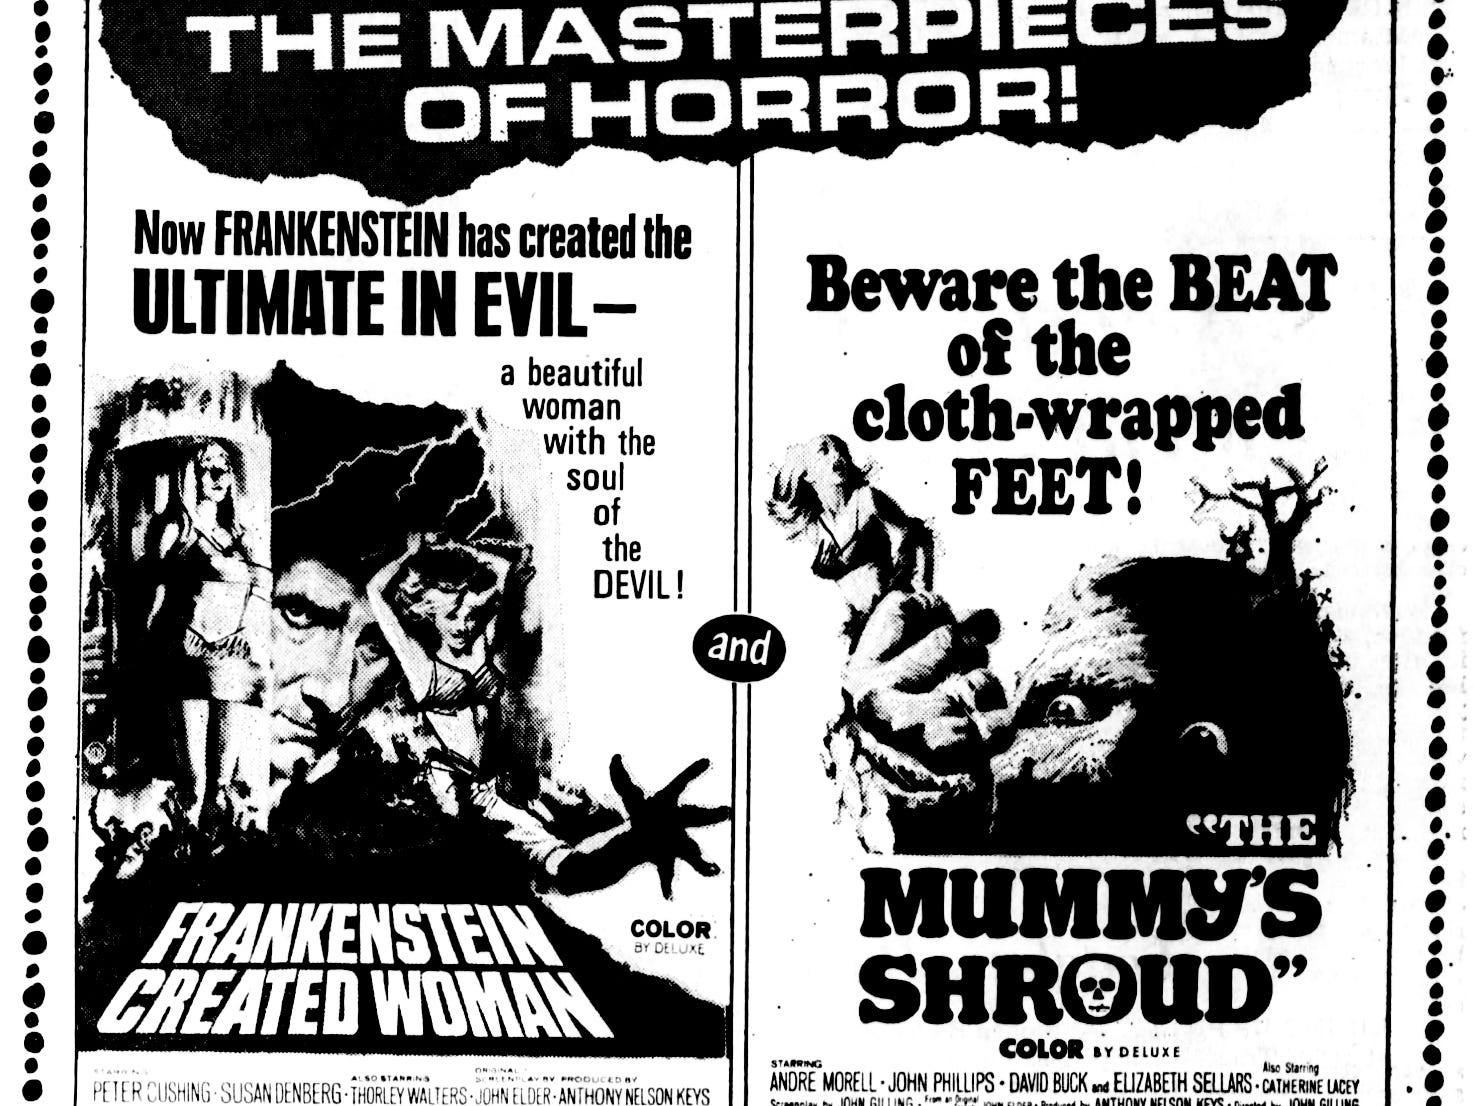 """""""Frankenstein Created Woman"""" and """"The Mummy's Shroud,"""" Wednesday, May 17, 1967"""